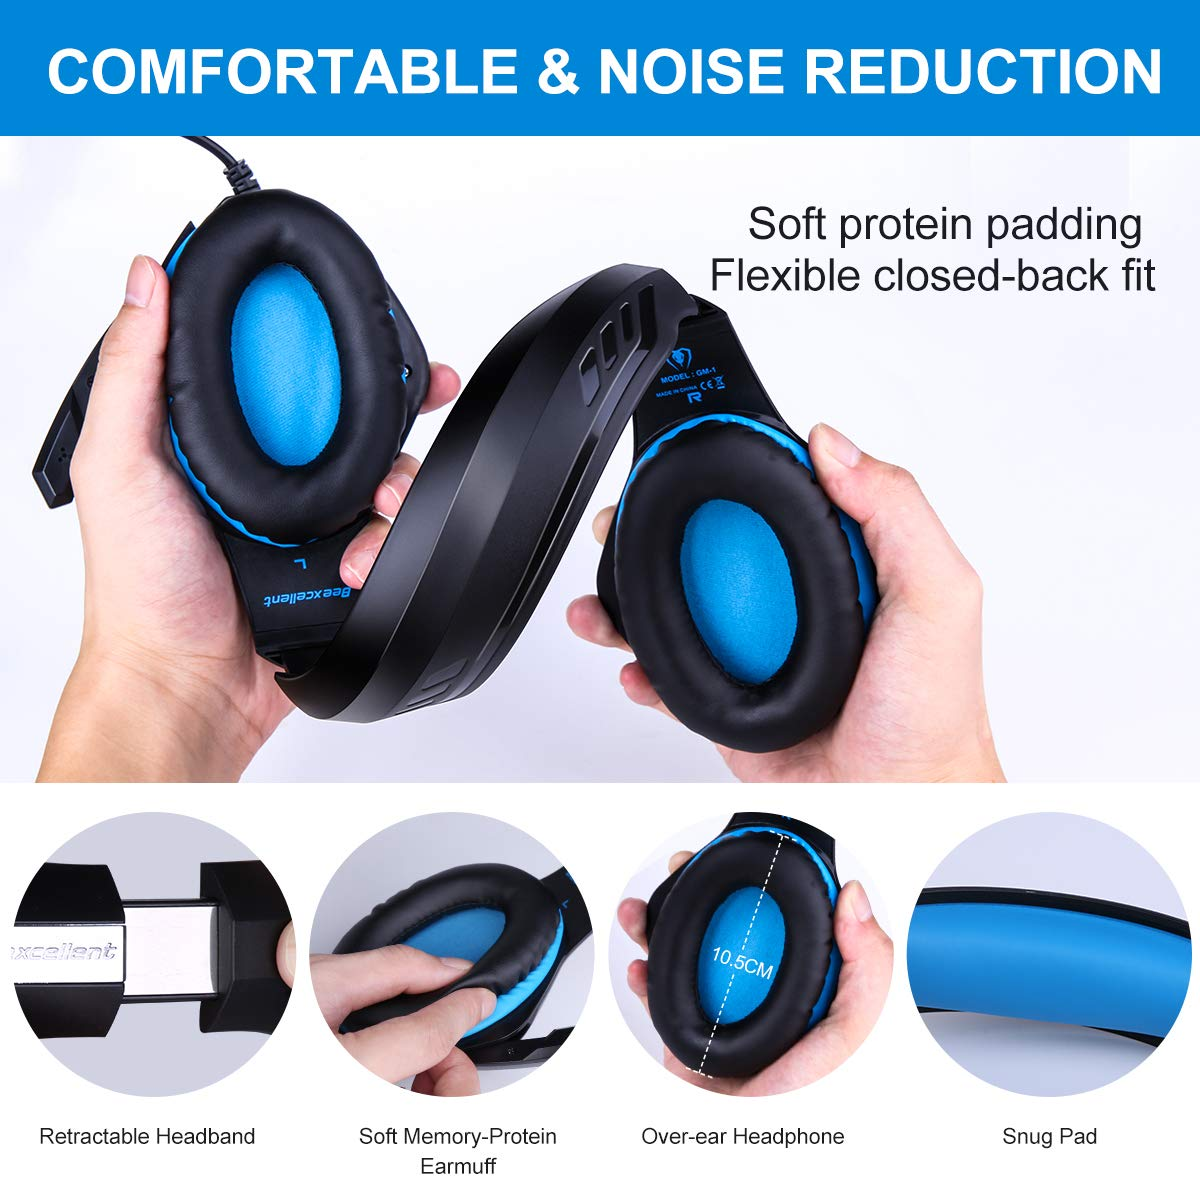 ARINO Cuffie Gamer Headset Gioco Video Cuffia con LED/per Cuffia Gaming Cablata Filo USB e 3.5 mm Presa per iPhone6/6S/6Plus/iPad/PS4/XBOX One/PC Windows XP/7/8/8.1/10/Tablet Cellulare (Blu)